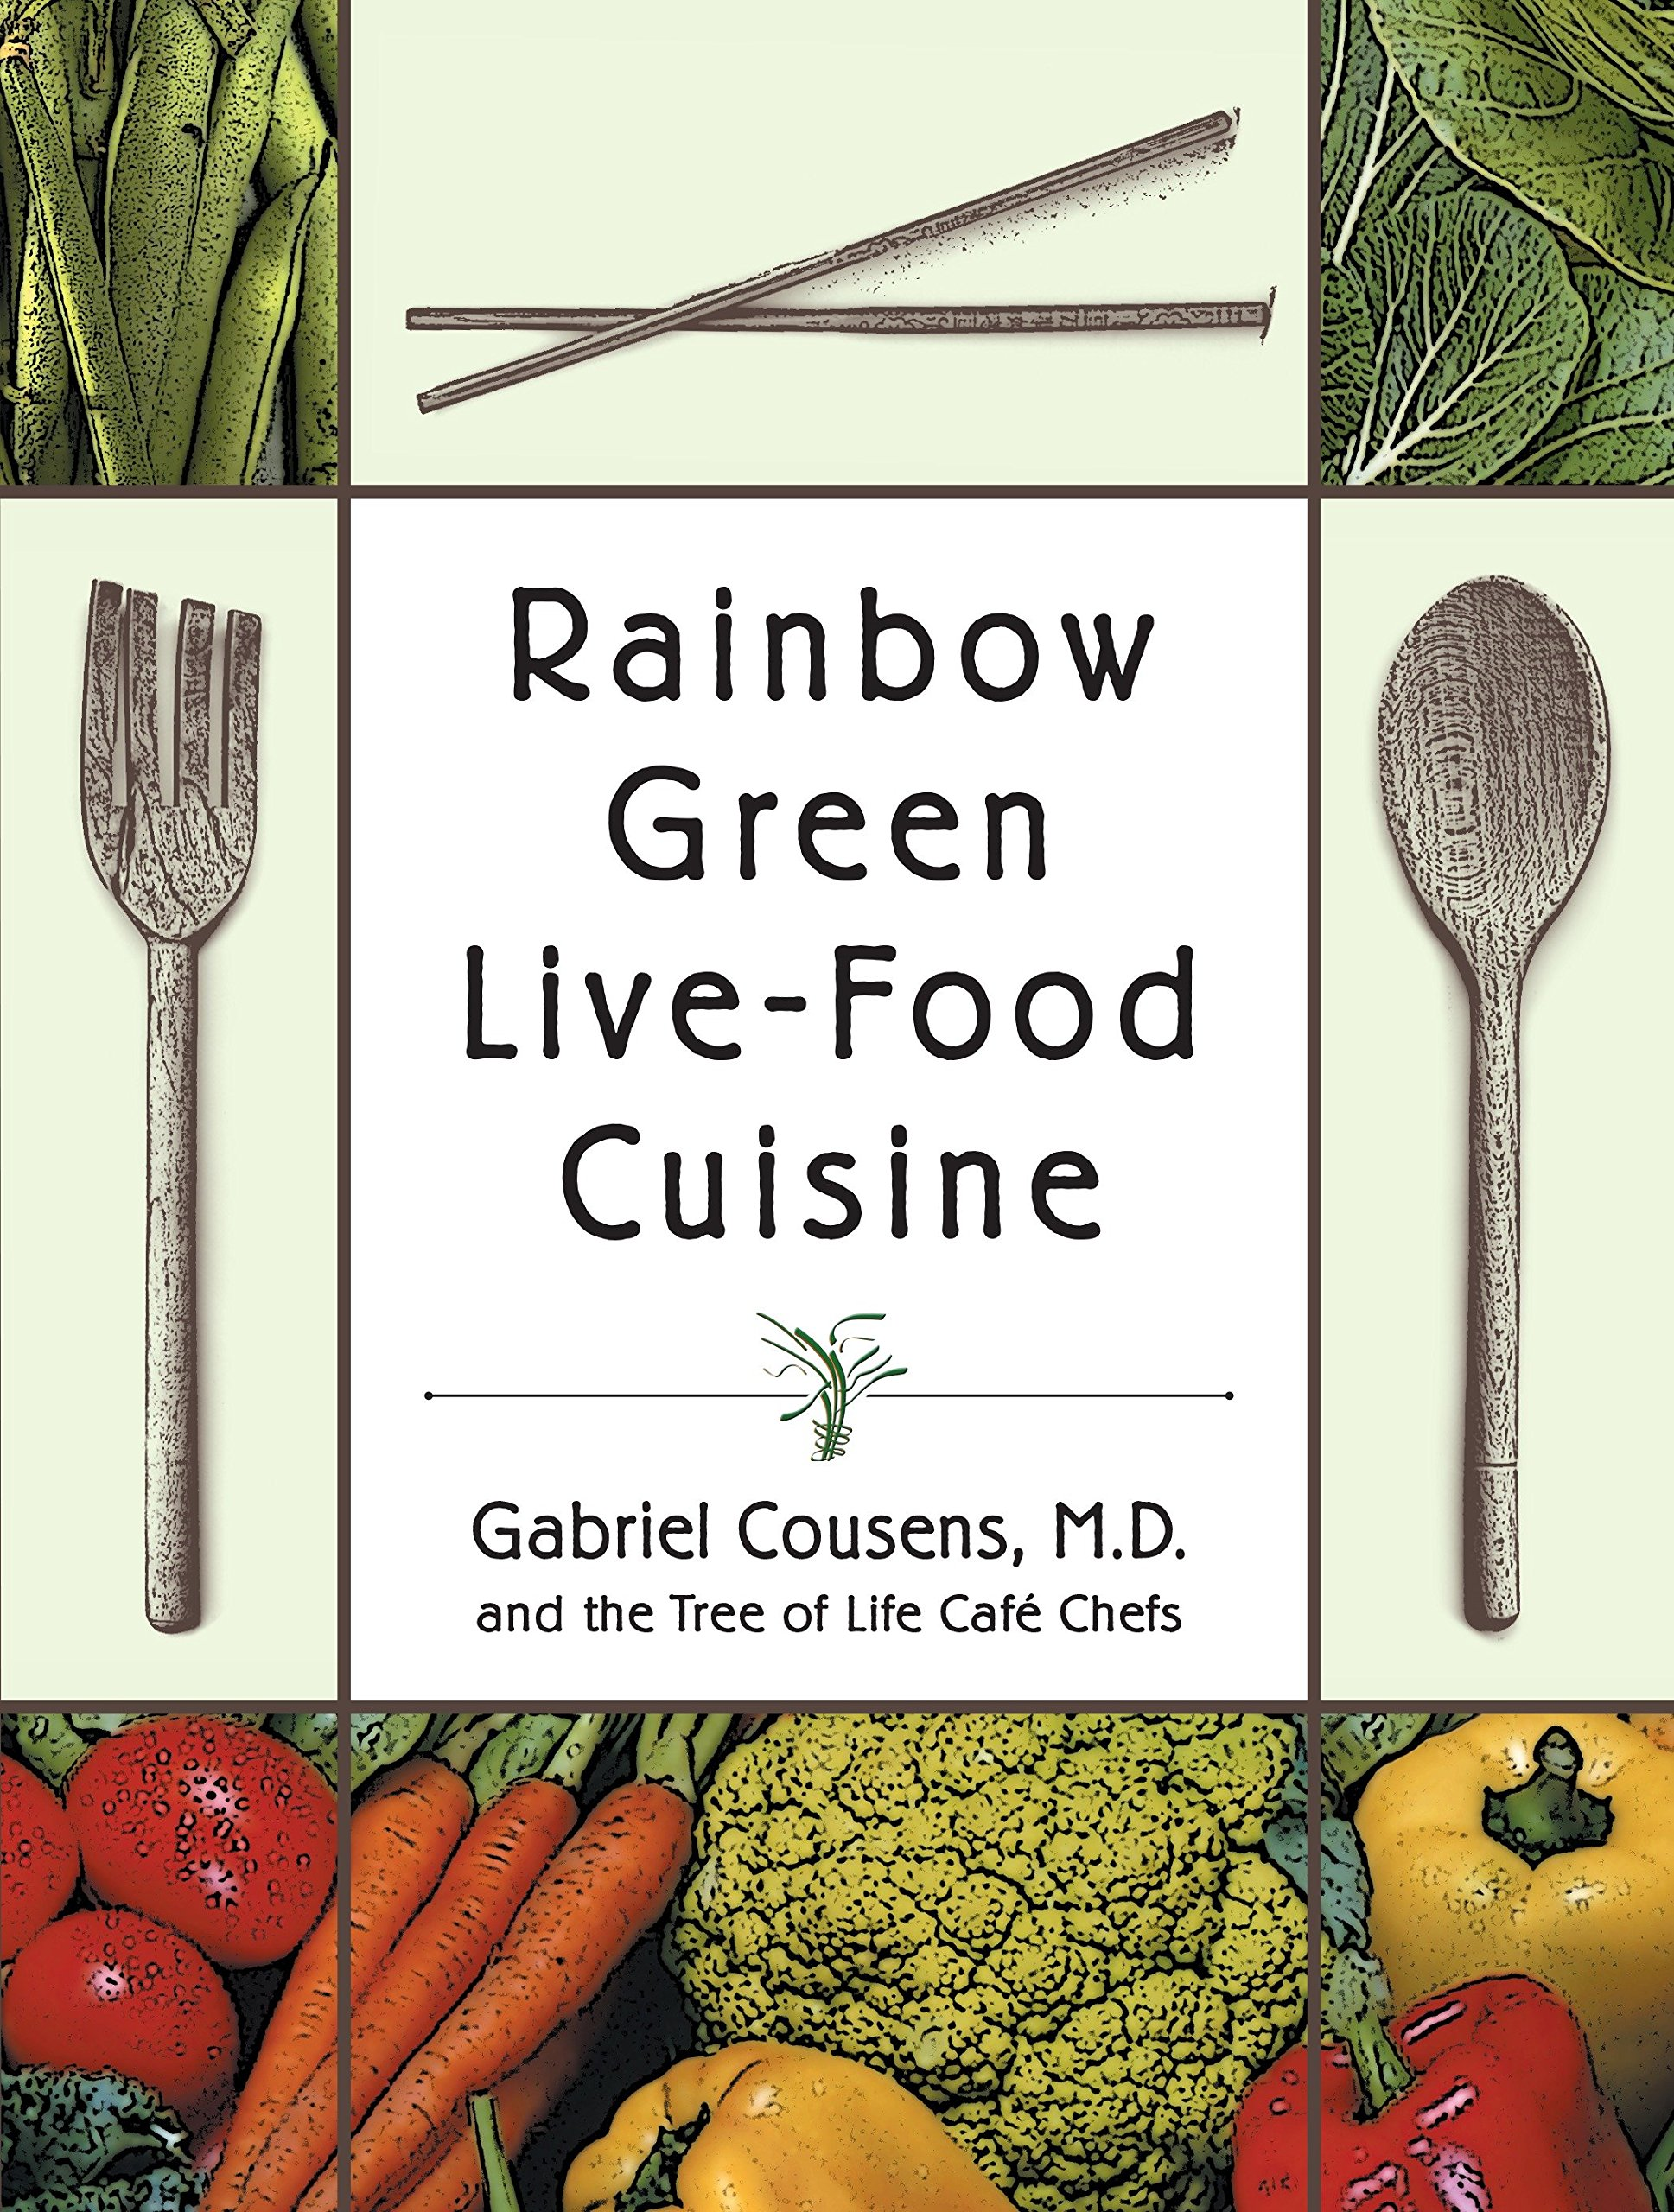 rainbow green live food cuisine - By Dr. Gabriel Cousens, M.D.Medical researchers have found that a high-fat, high-sugar diet, combined with environmental pollutants and stress, can lead to a buildup of toxins in the body collectively known as chronic degenerative disease. Here holistic physician Gabriel Cousens addresses the dangers of foods that have been genetically modified, treated with pesticides, microwaved, and irradiated—and presents an alternative diet of whole, natural, organic, and raw foods that can reverse chronic disease and restore vitality.Both a guide to natural health and a cookbook, Rainbow Green Live-Food Cuisine features over 250 revolutionary vegan recipes from chefs at the Tree of Life Cafe, from Buttery Butternut Porridge to Raw-violis to Carob Coconut Cream Eclairs. Combining modern research on metabolism, ecological consciousness, and a rainbow of live foods, Dr. Cousens dishes up comprehensive, practical, and delectable solutions to the woes of the Western diet.